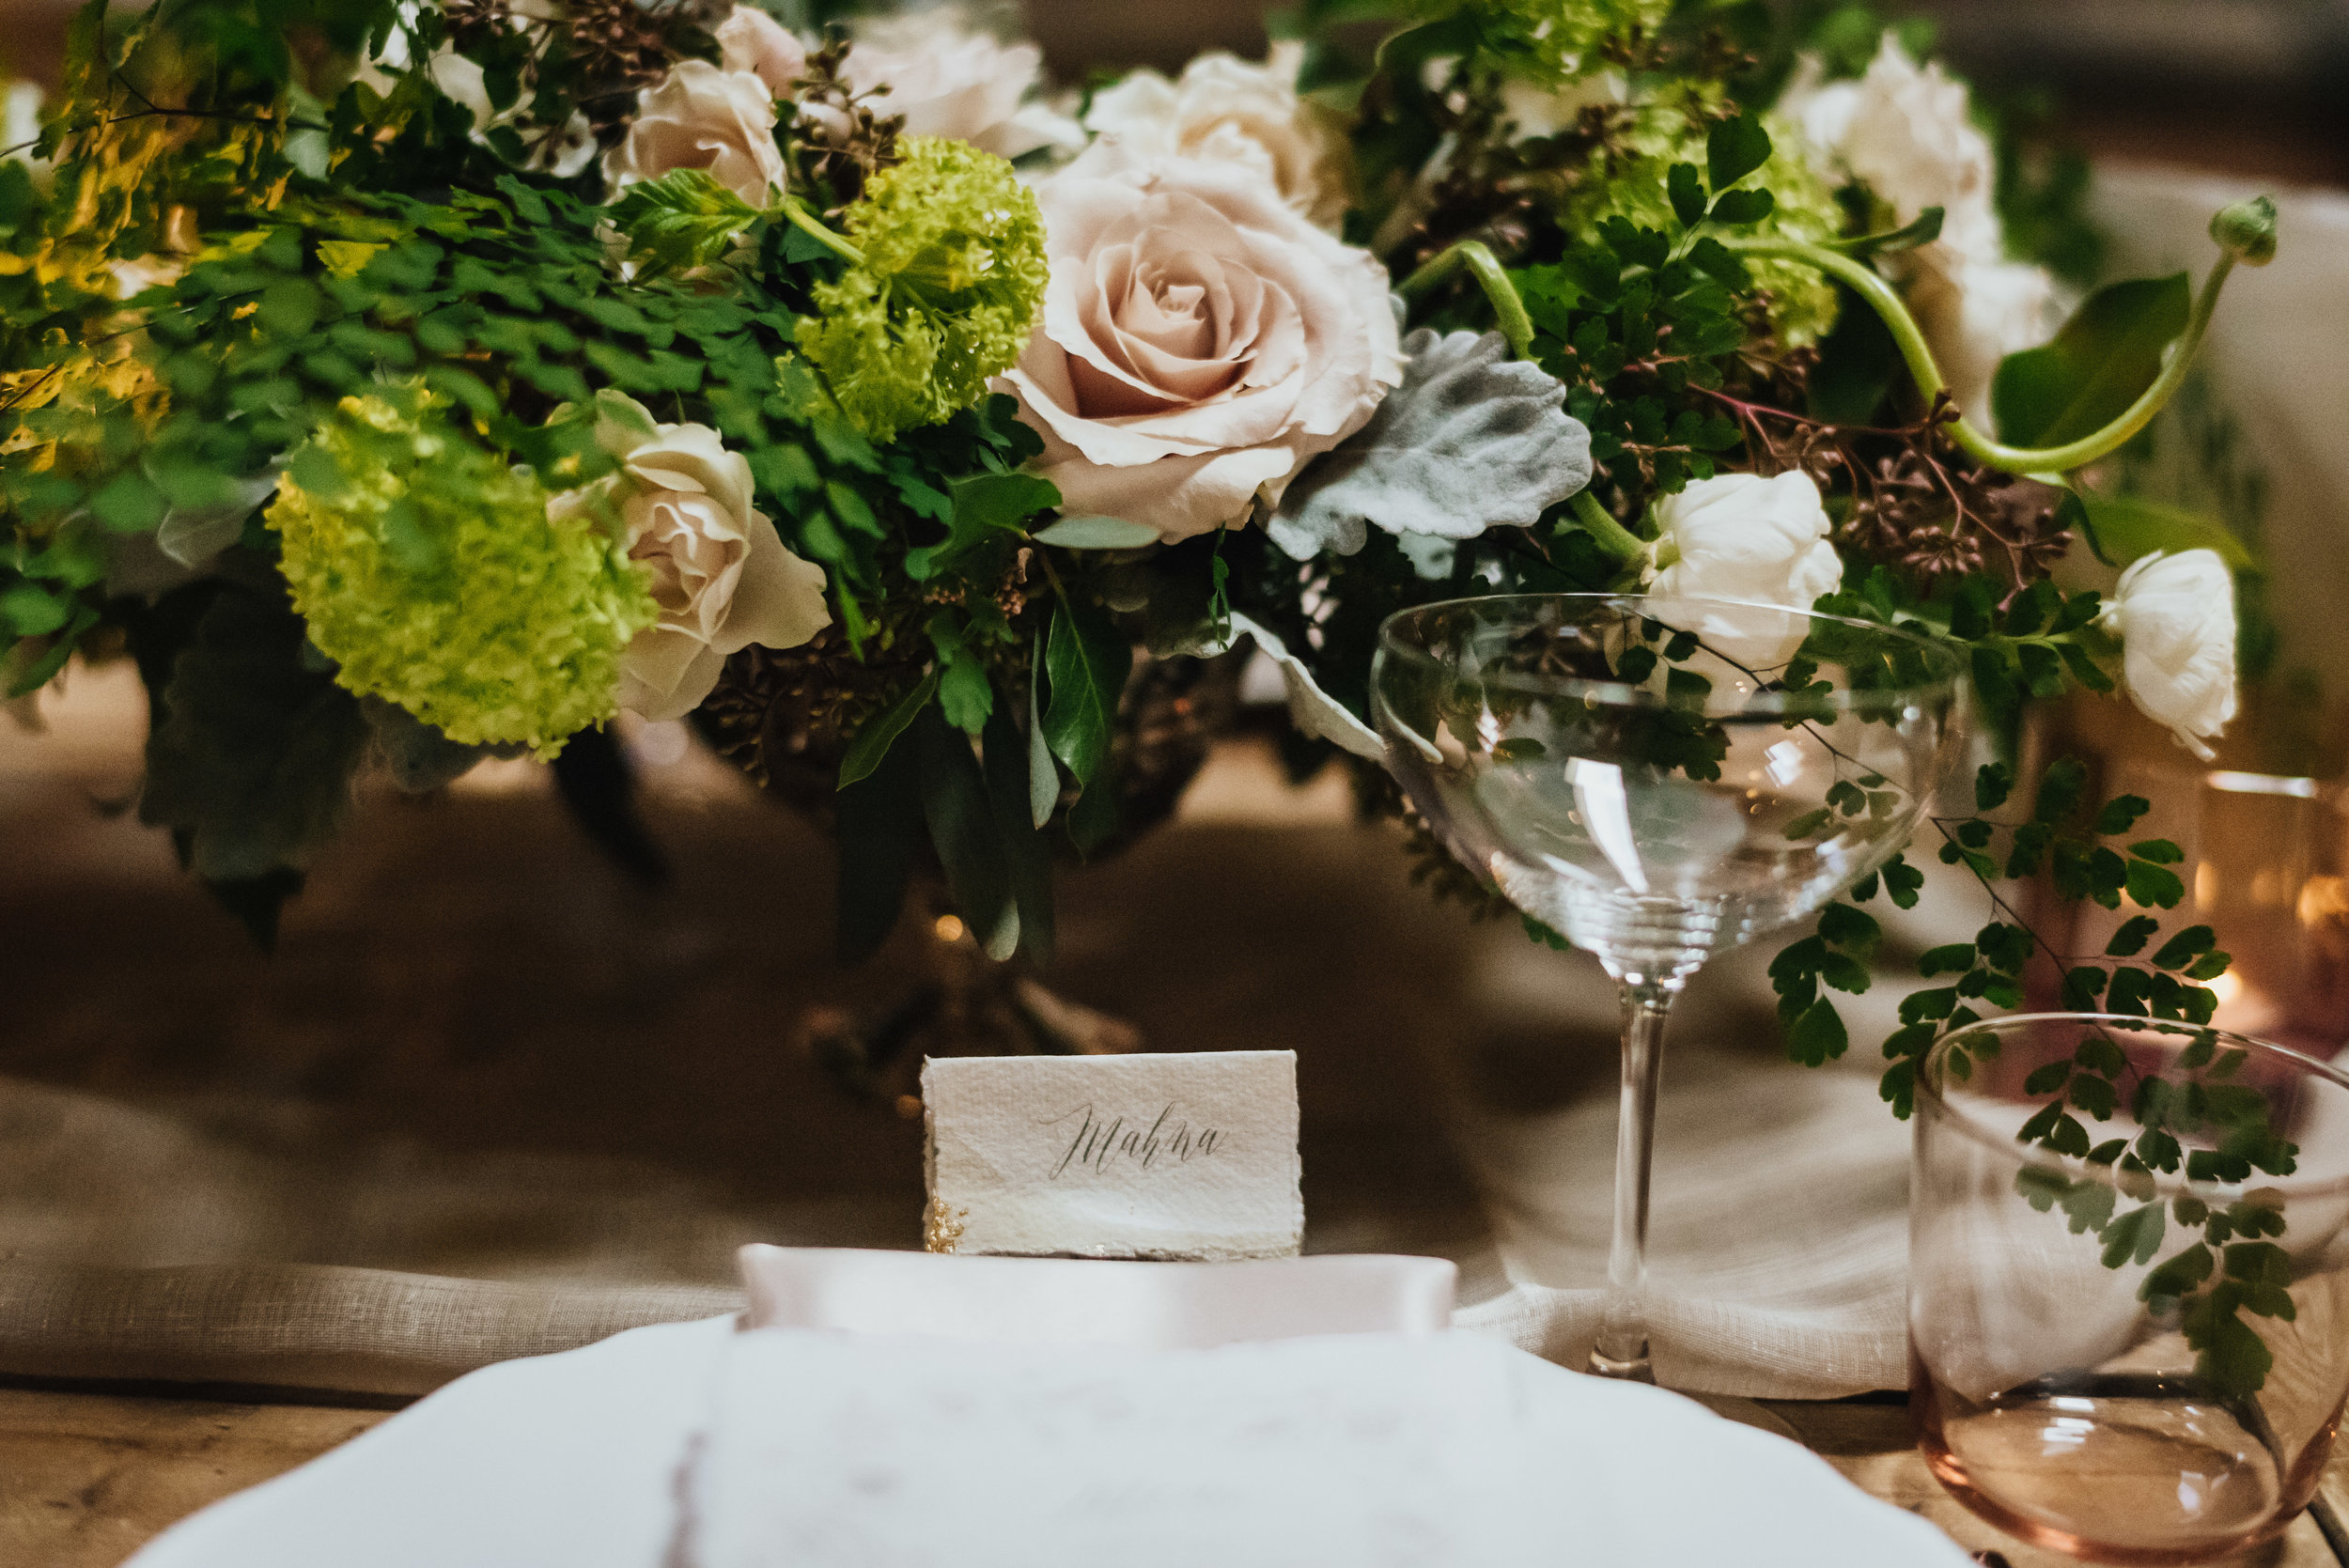 handmade place cards.jpg